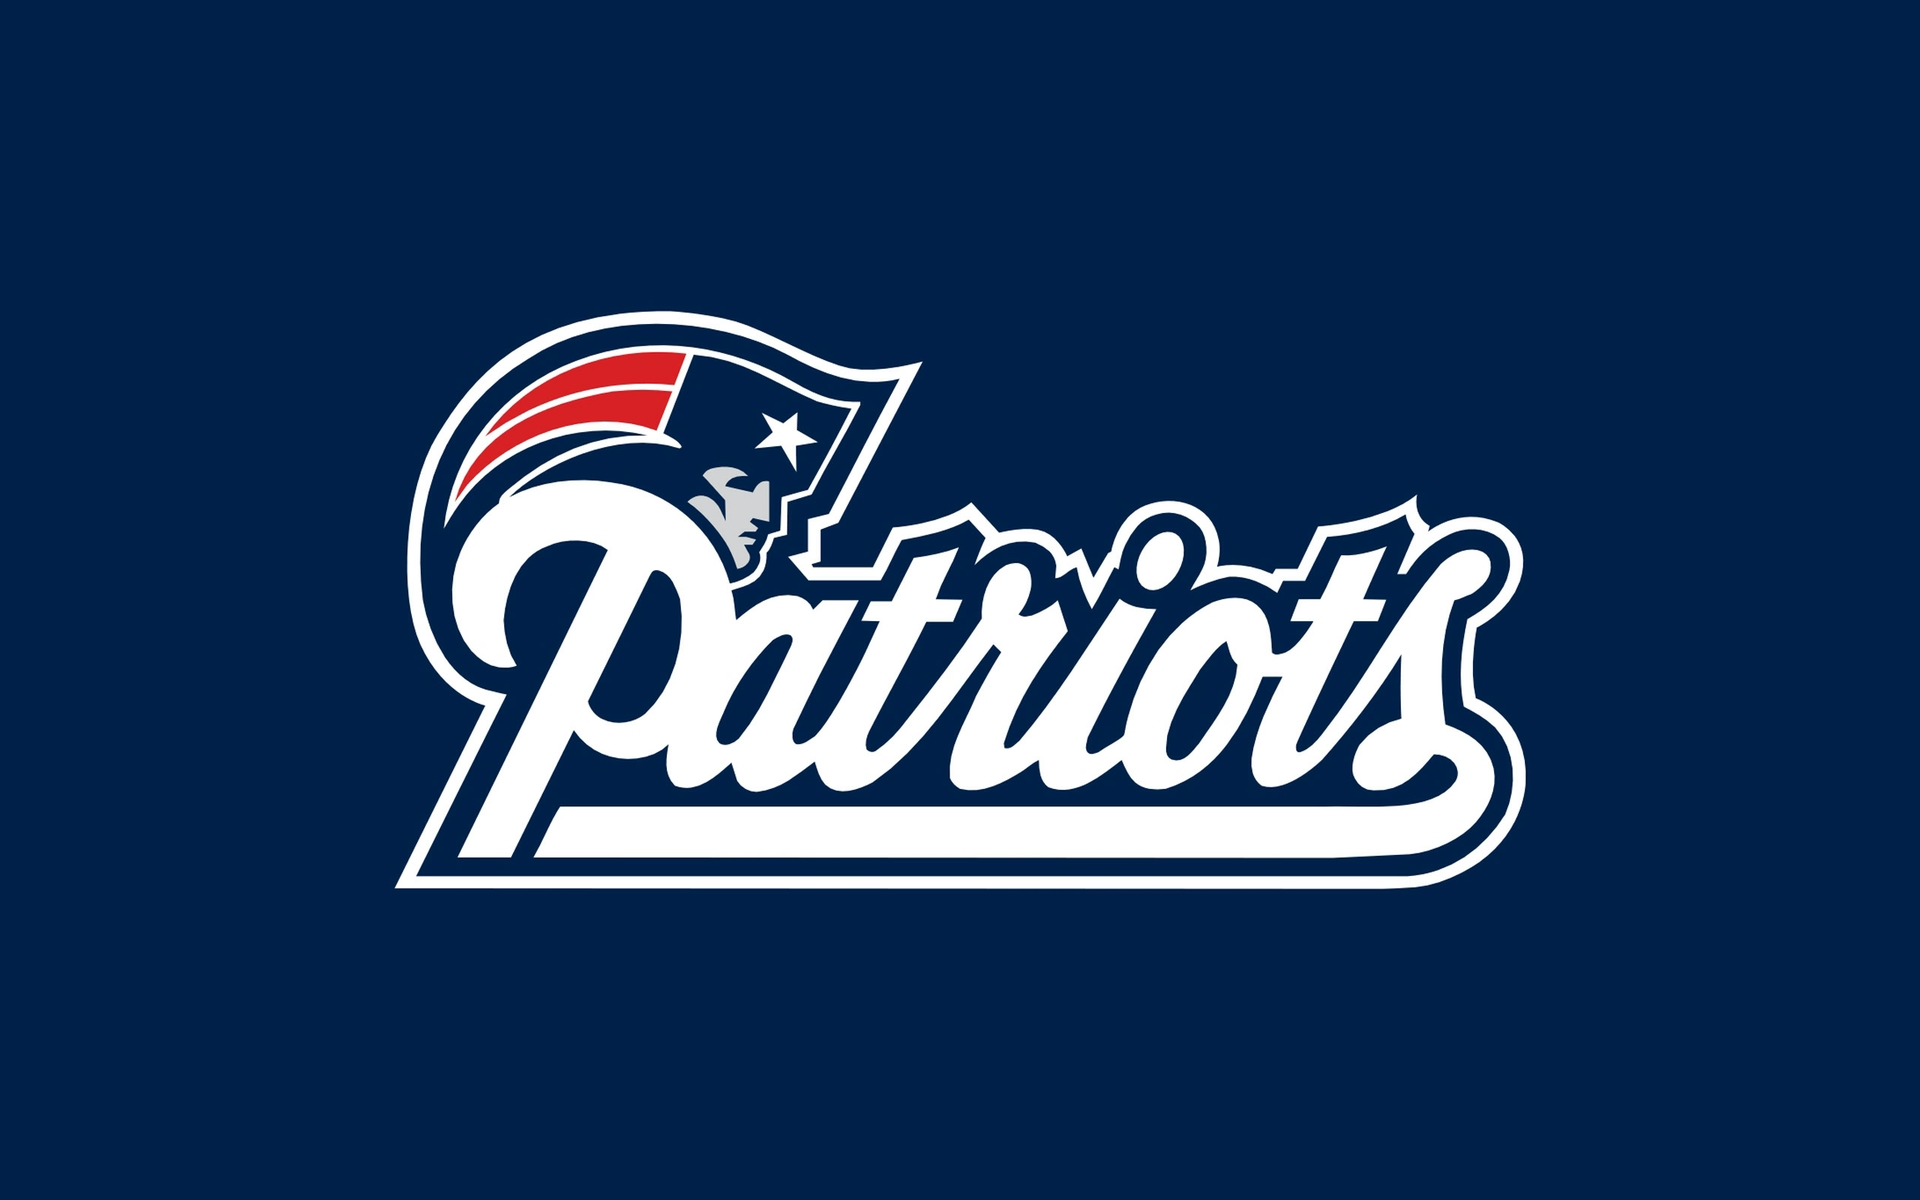 new england patriots logo wallpaper hd 55966